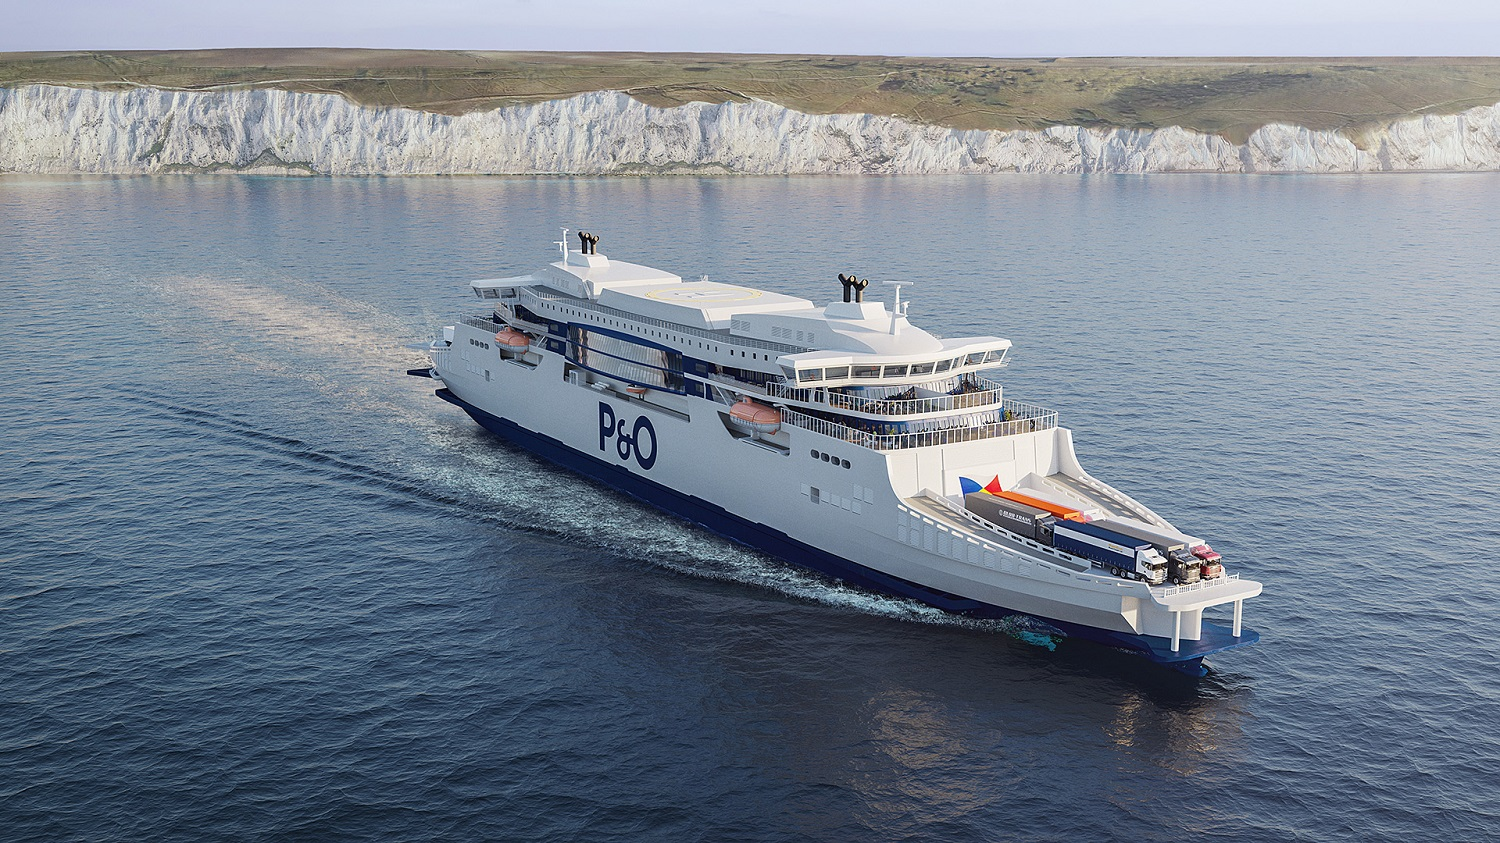 ABB to power P&O Ferries' eco-friendly vessels